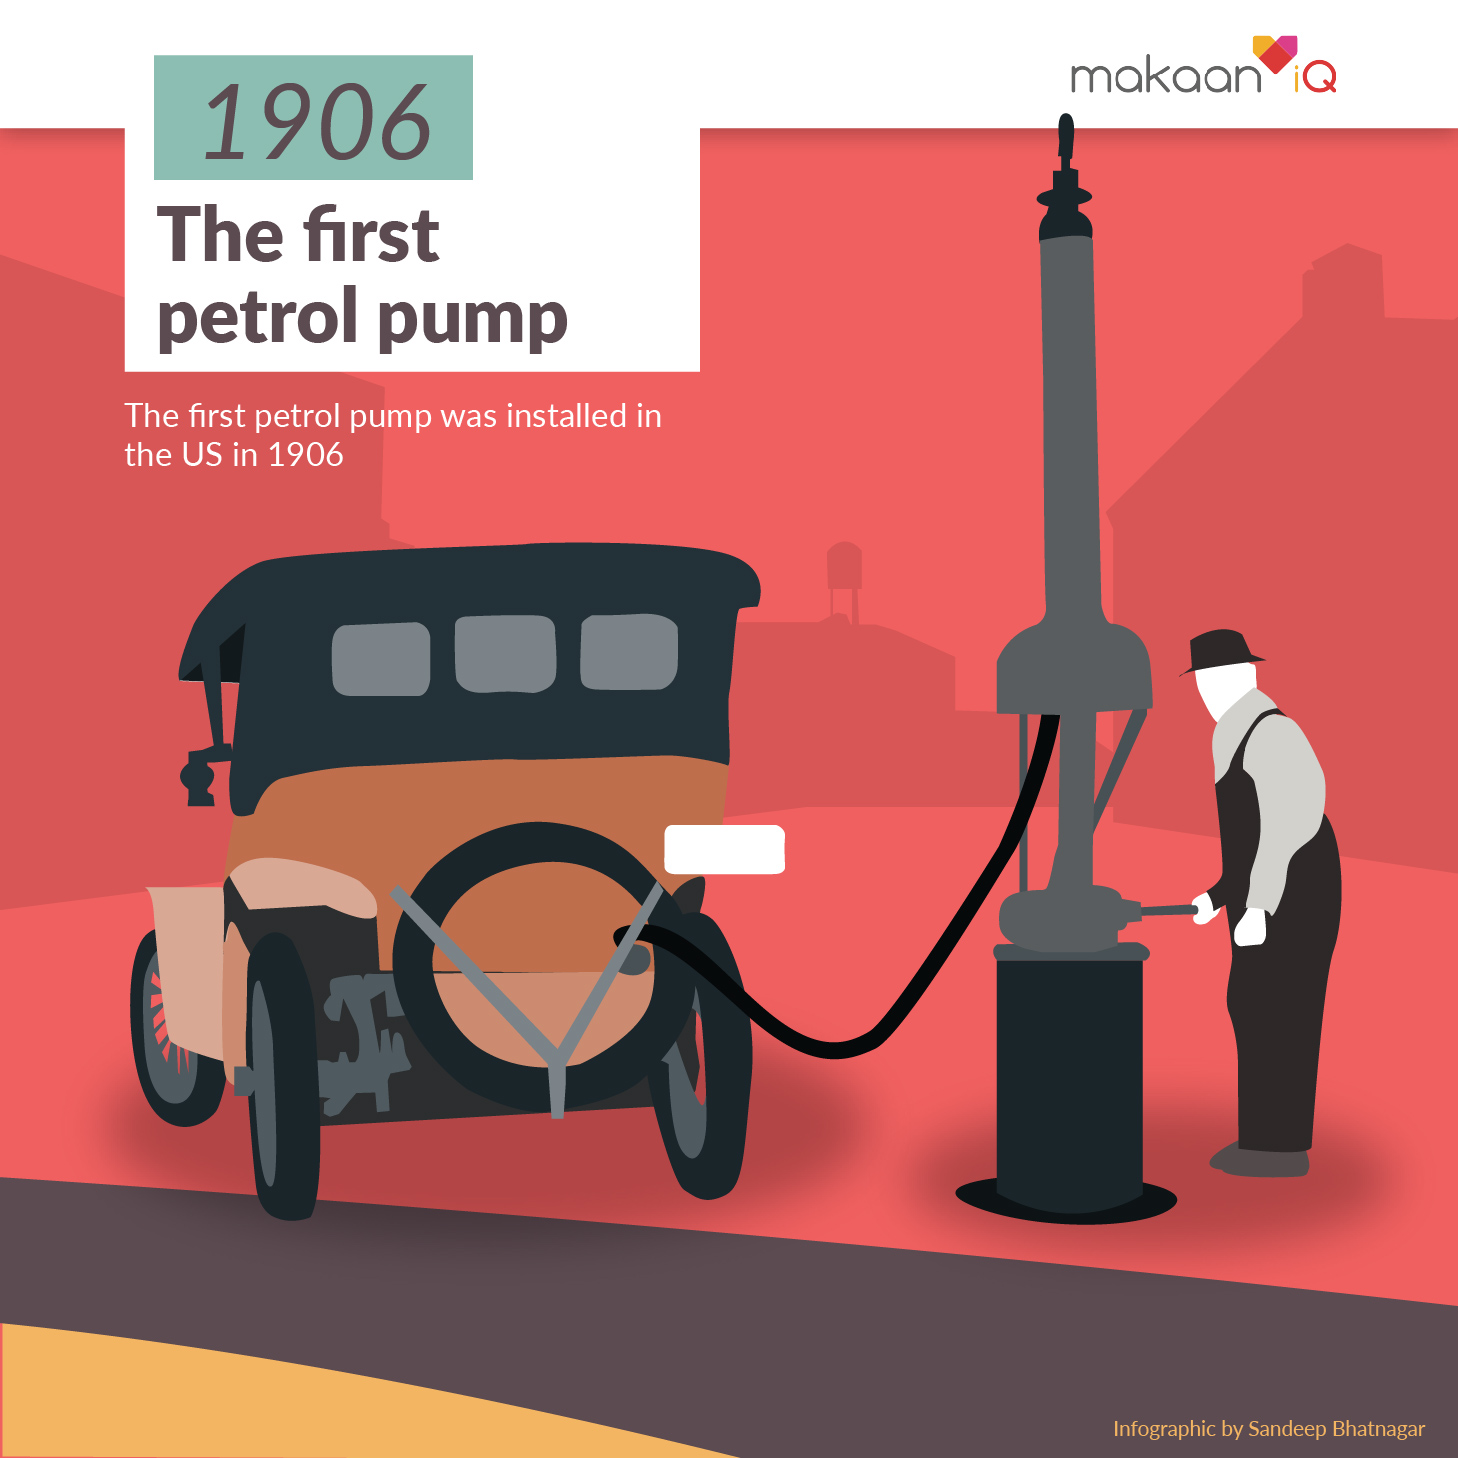 The First Petrol Pump